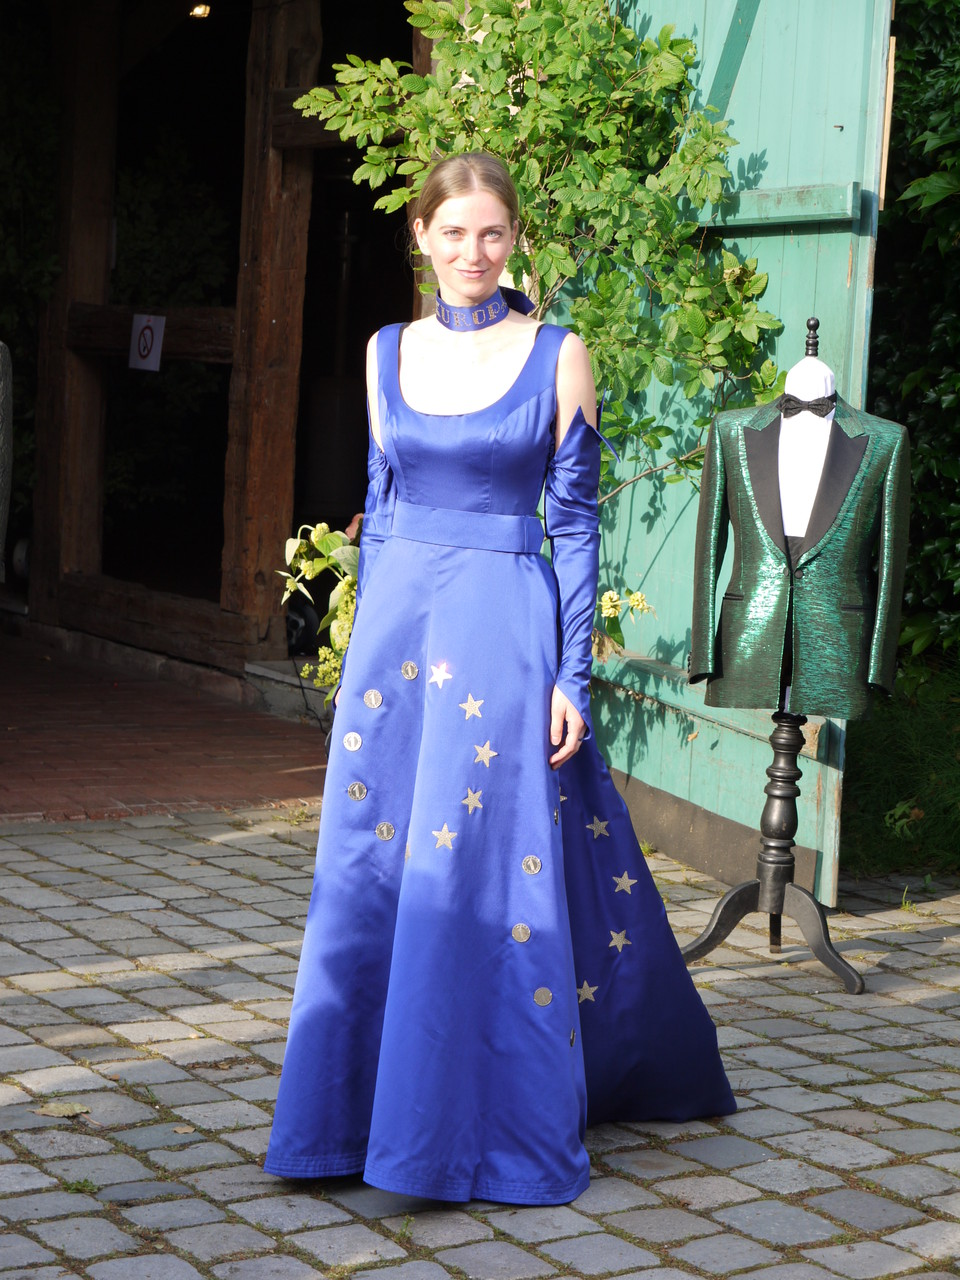 Das Europakleid von Hertha Strecker-Harder